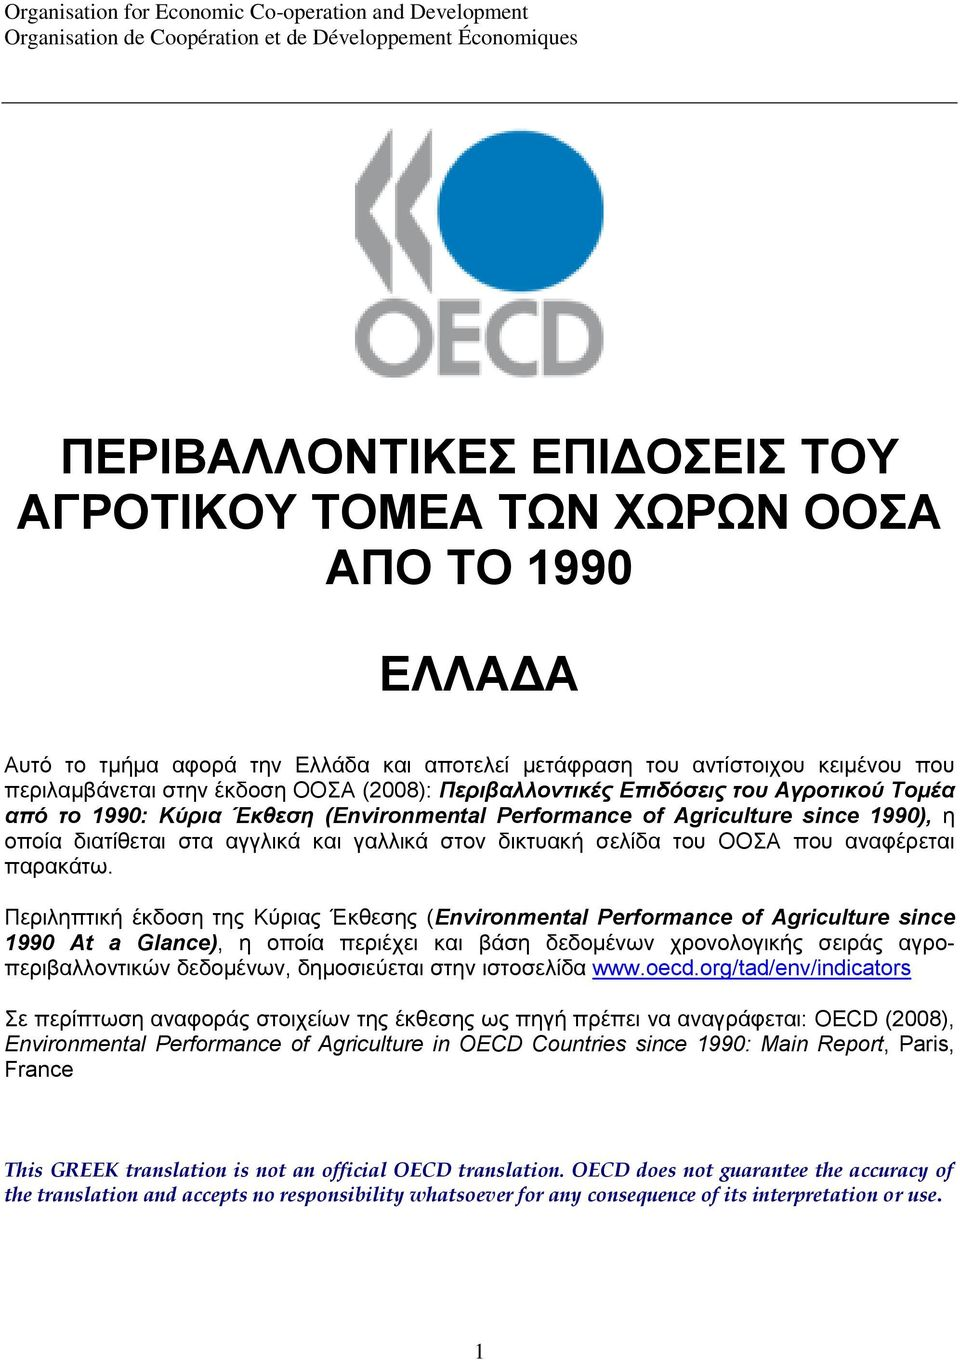 (Environmental Performance of Agriculture since 1990), η οποία διαηίθεηαι ζηα αγγλικά και γαλλικά ζηον δικησακή ζελίδα ηοσ ΟΟΣΑ ποσ αναθέρεηαι παρακάηω.